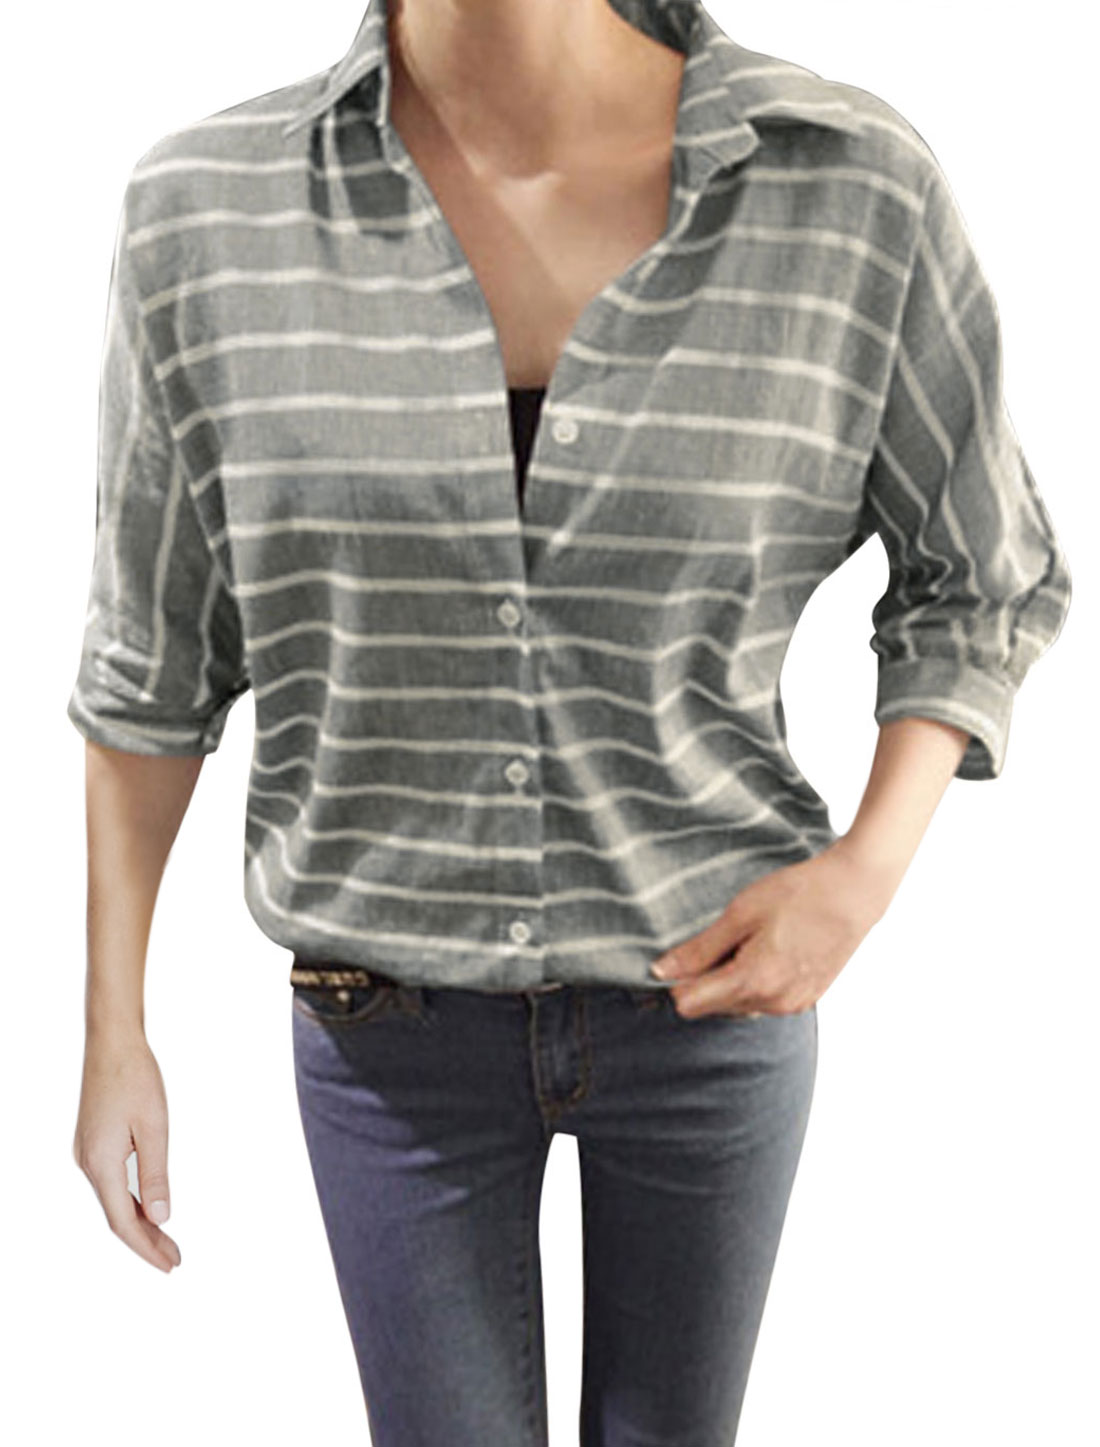 Lady Crochet Design Stripes Pattern Single Breasted Casual Shirt Light Gray M